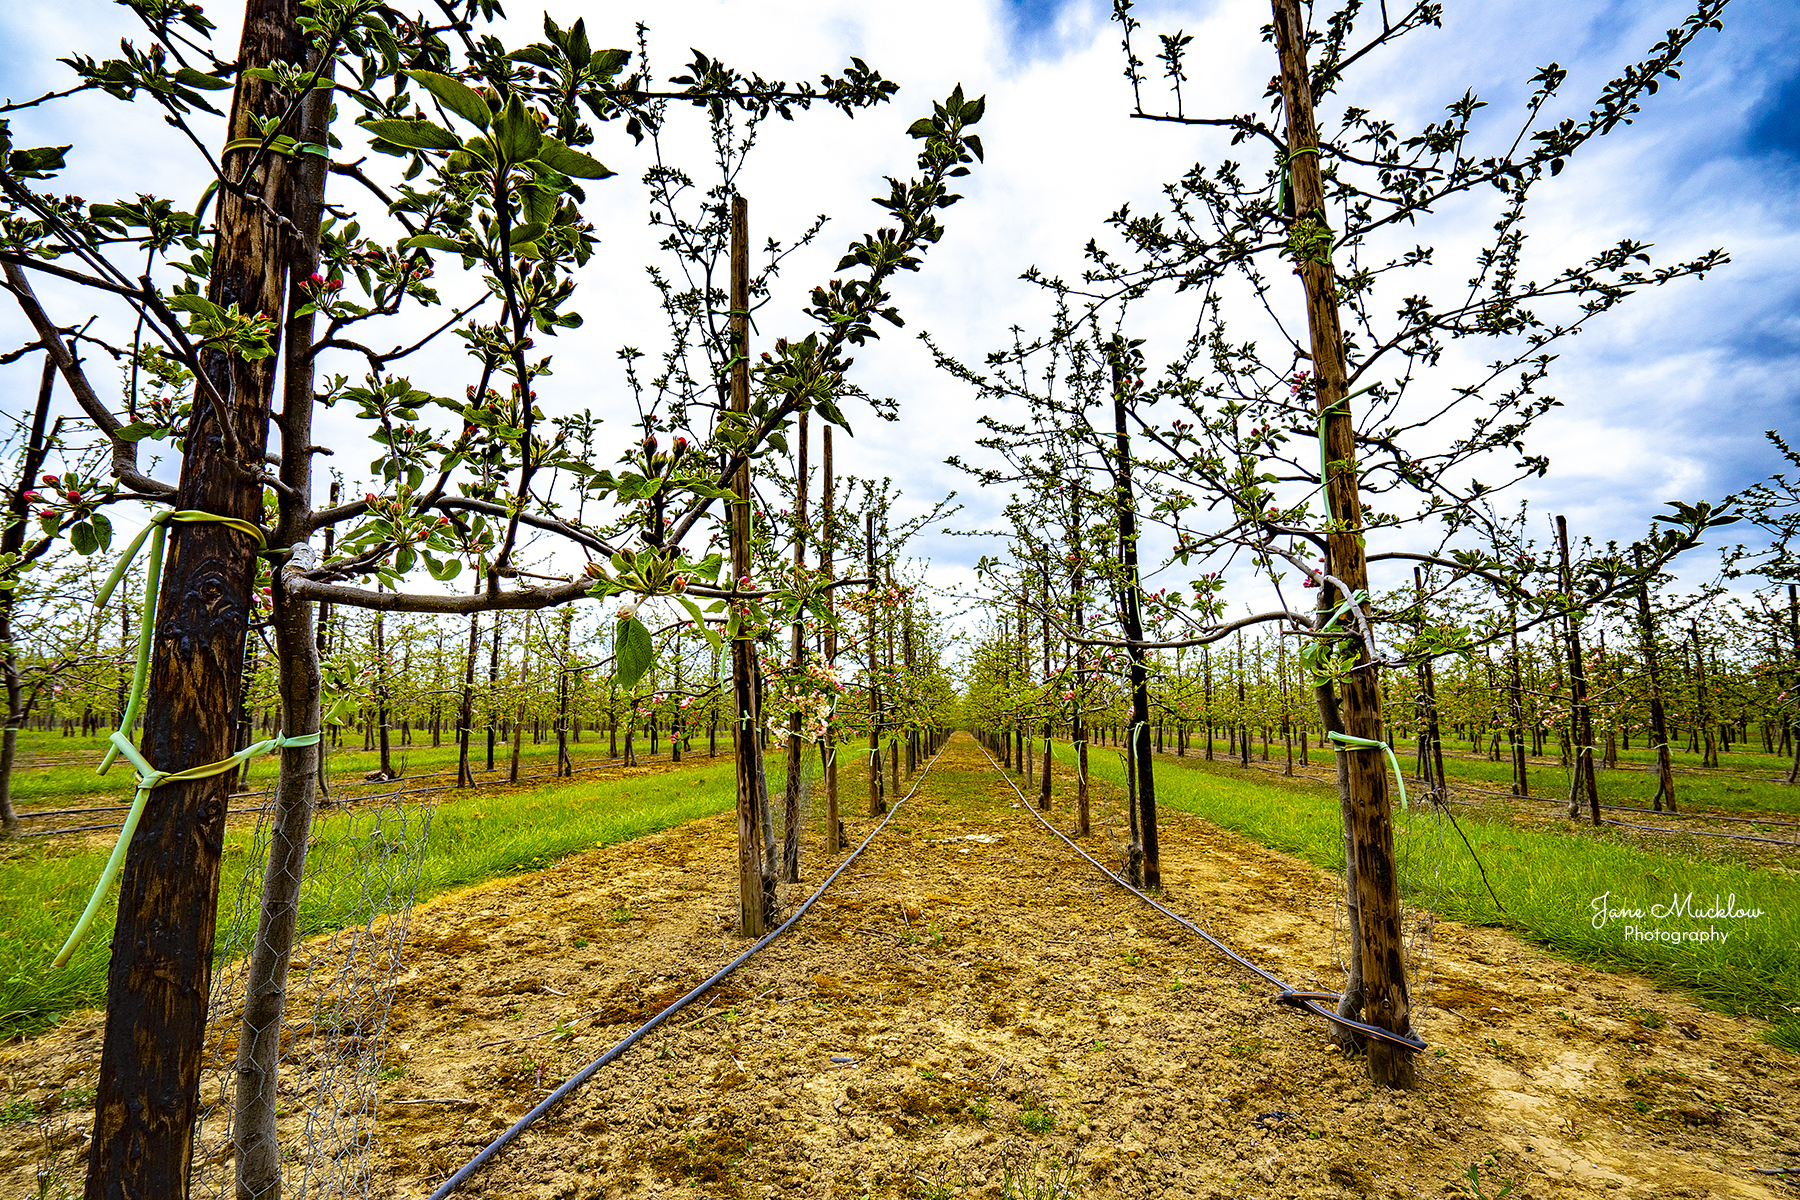 Photo of apple blossom in an orchard at Golden Green, by Jane Mucklow